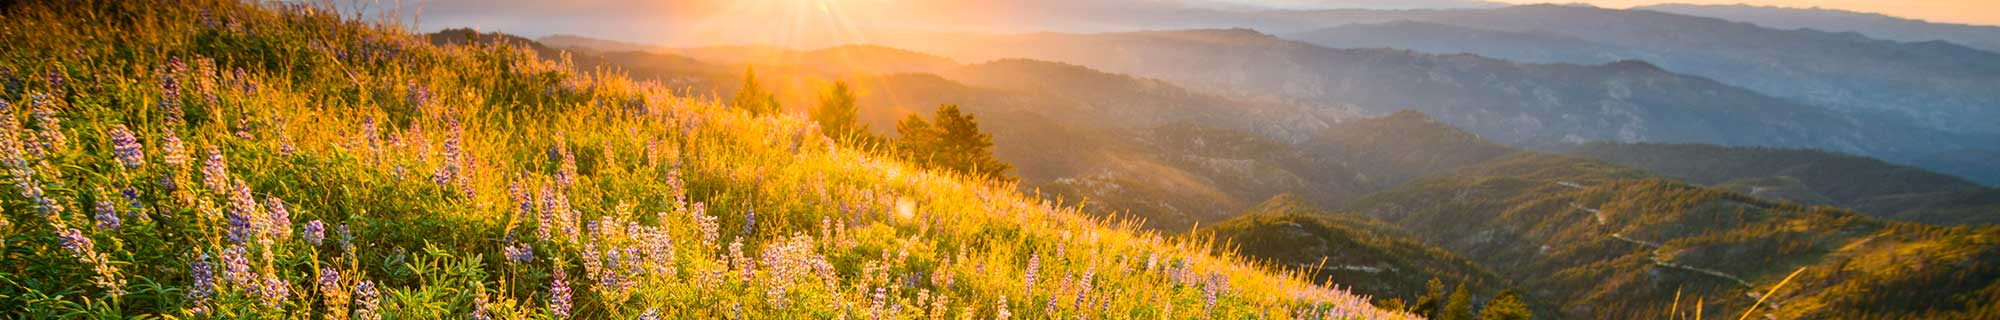 wildflowers at sun rise